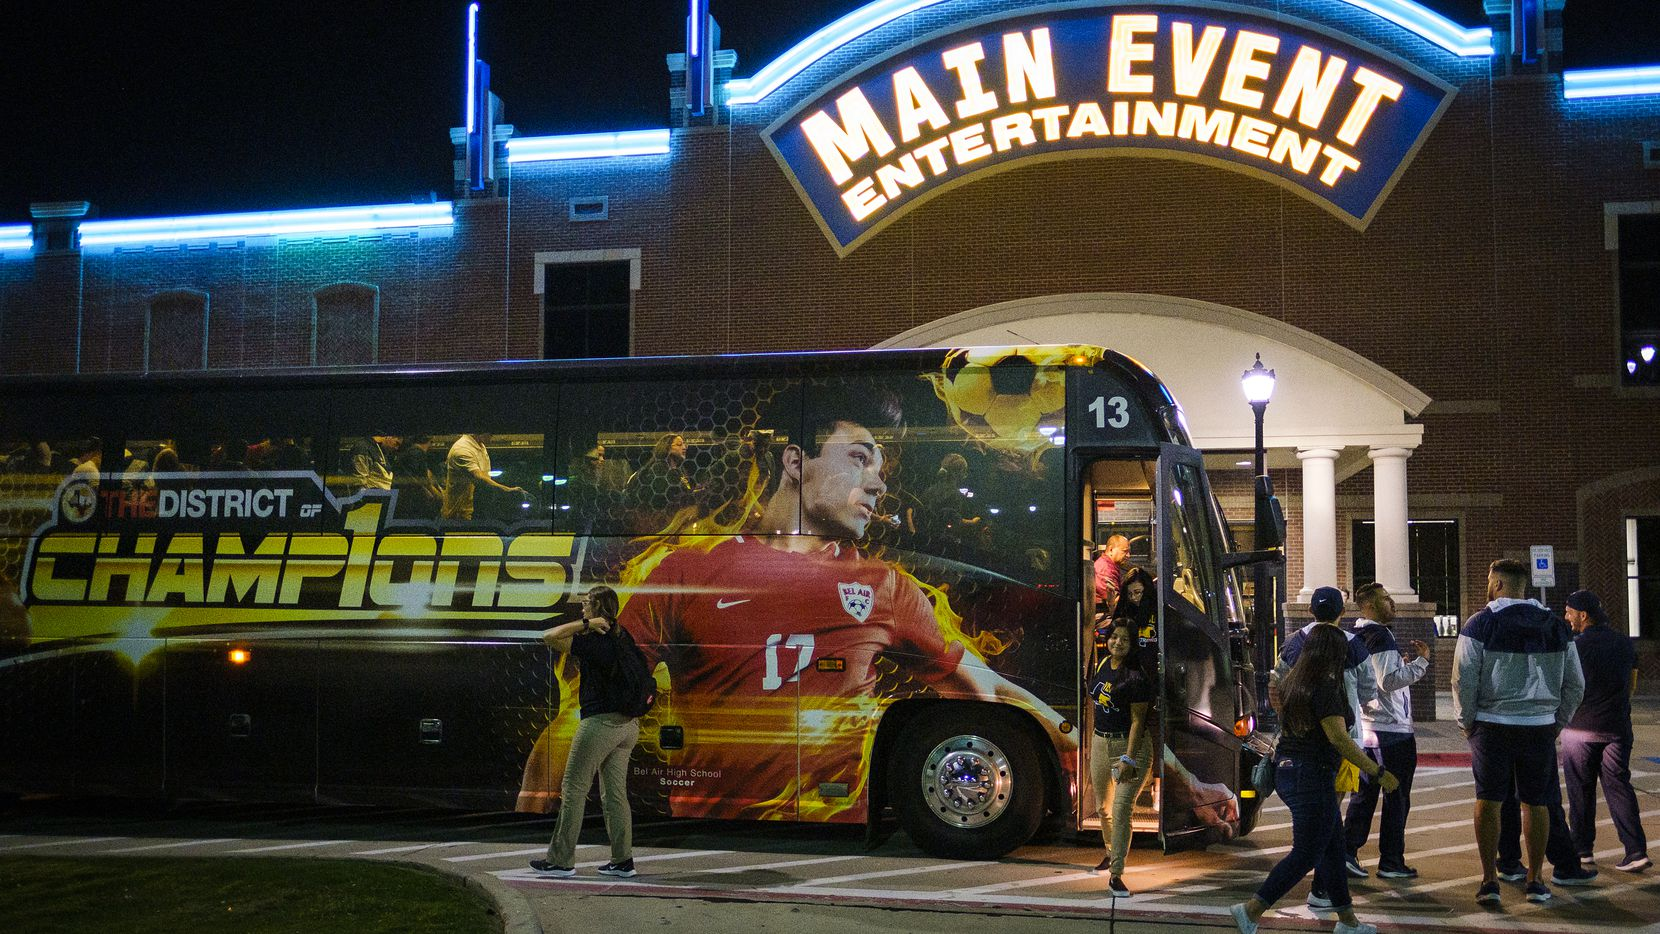 El Paso Eastwood football team buses arrive at the Main Event entertainment center for a post-game party after they played Plano High School at the The Star on Thursday, Sept. 5, 2019, in Frisco, Texas.